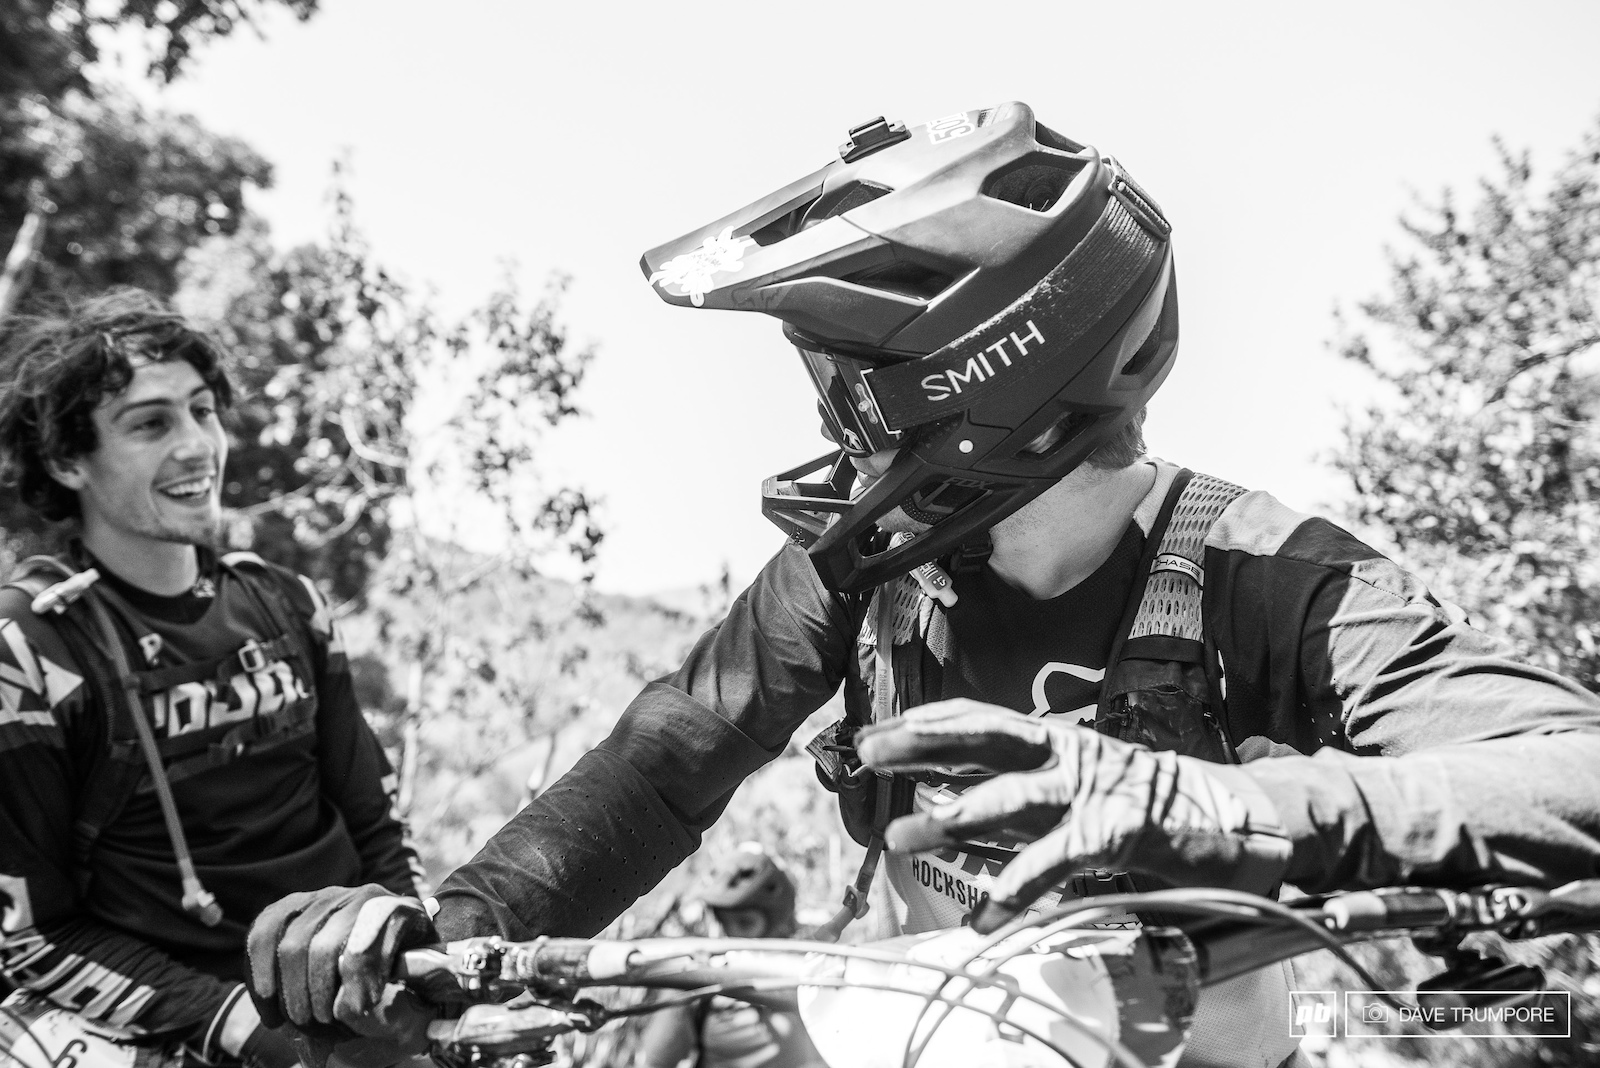 Mark Scott and Josh Bryceland compare wild stories from their ride down stage 13.